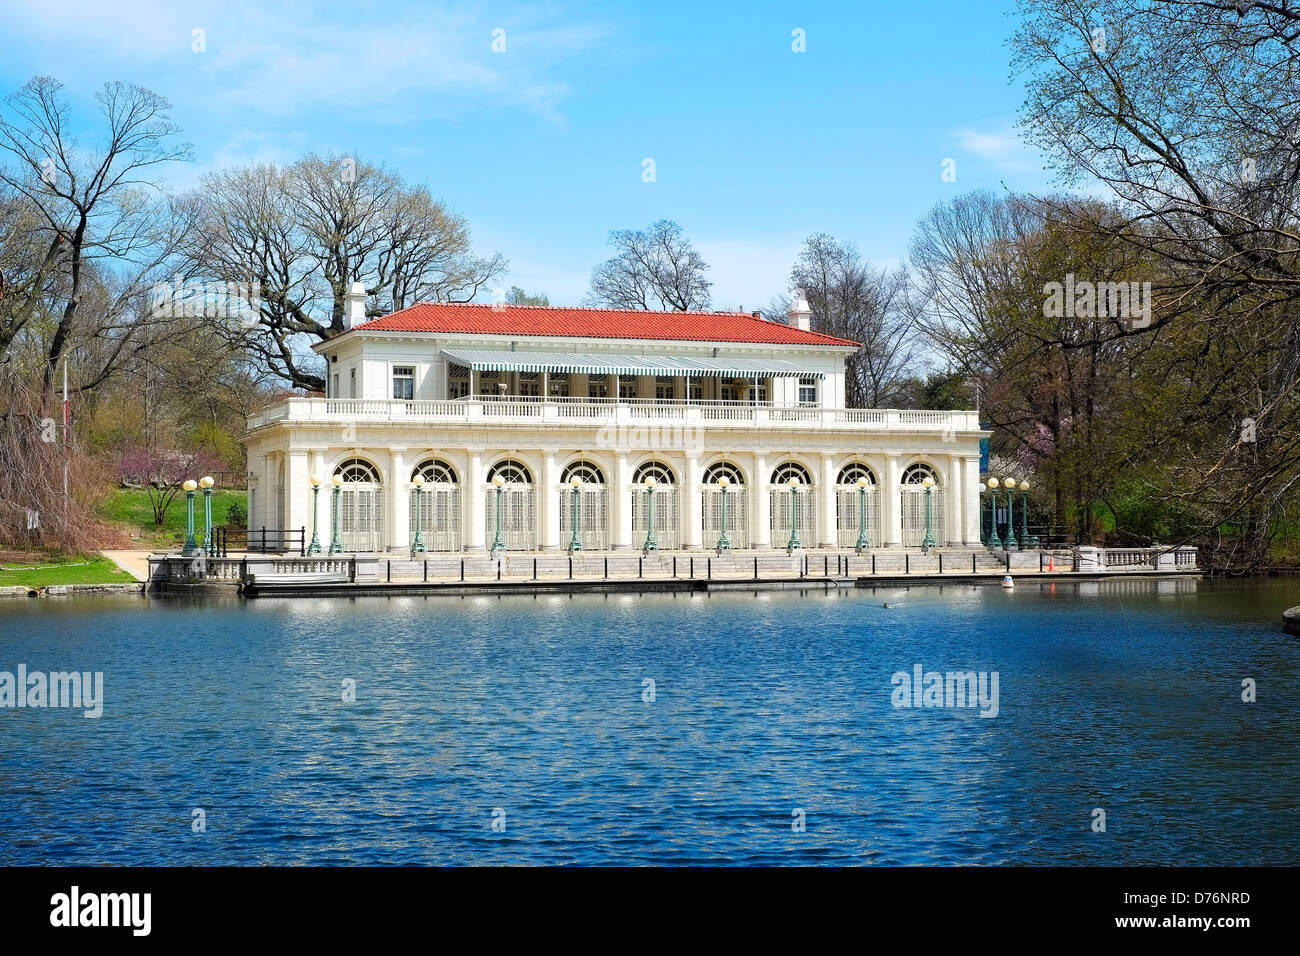 The boathouse on the lake in Prospect Park, Brooklyn which now is home to the Audubon Society. Stock Photo